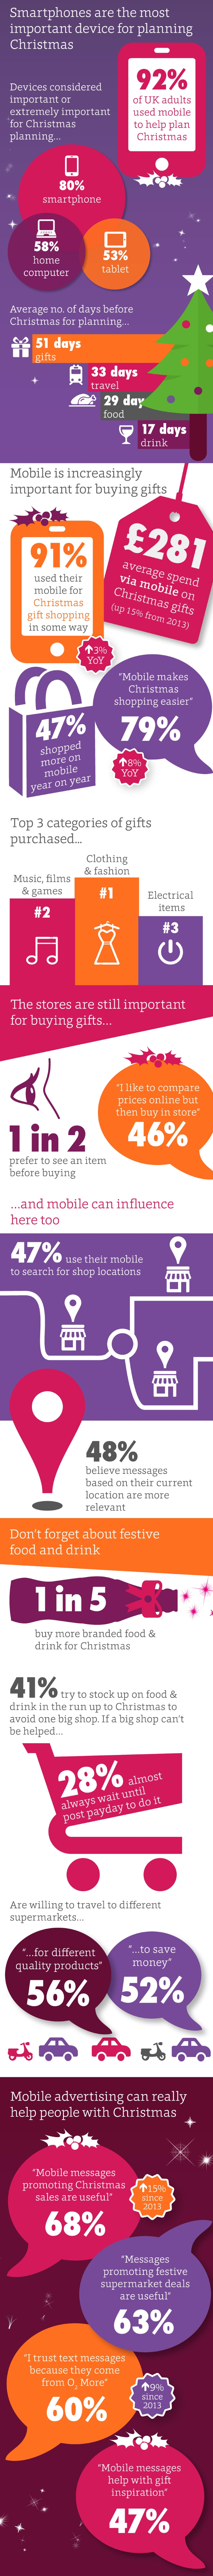 Infographic: Nine in Ten Brits Used Mobiles in the Christmas Shopping Process